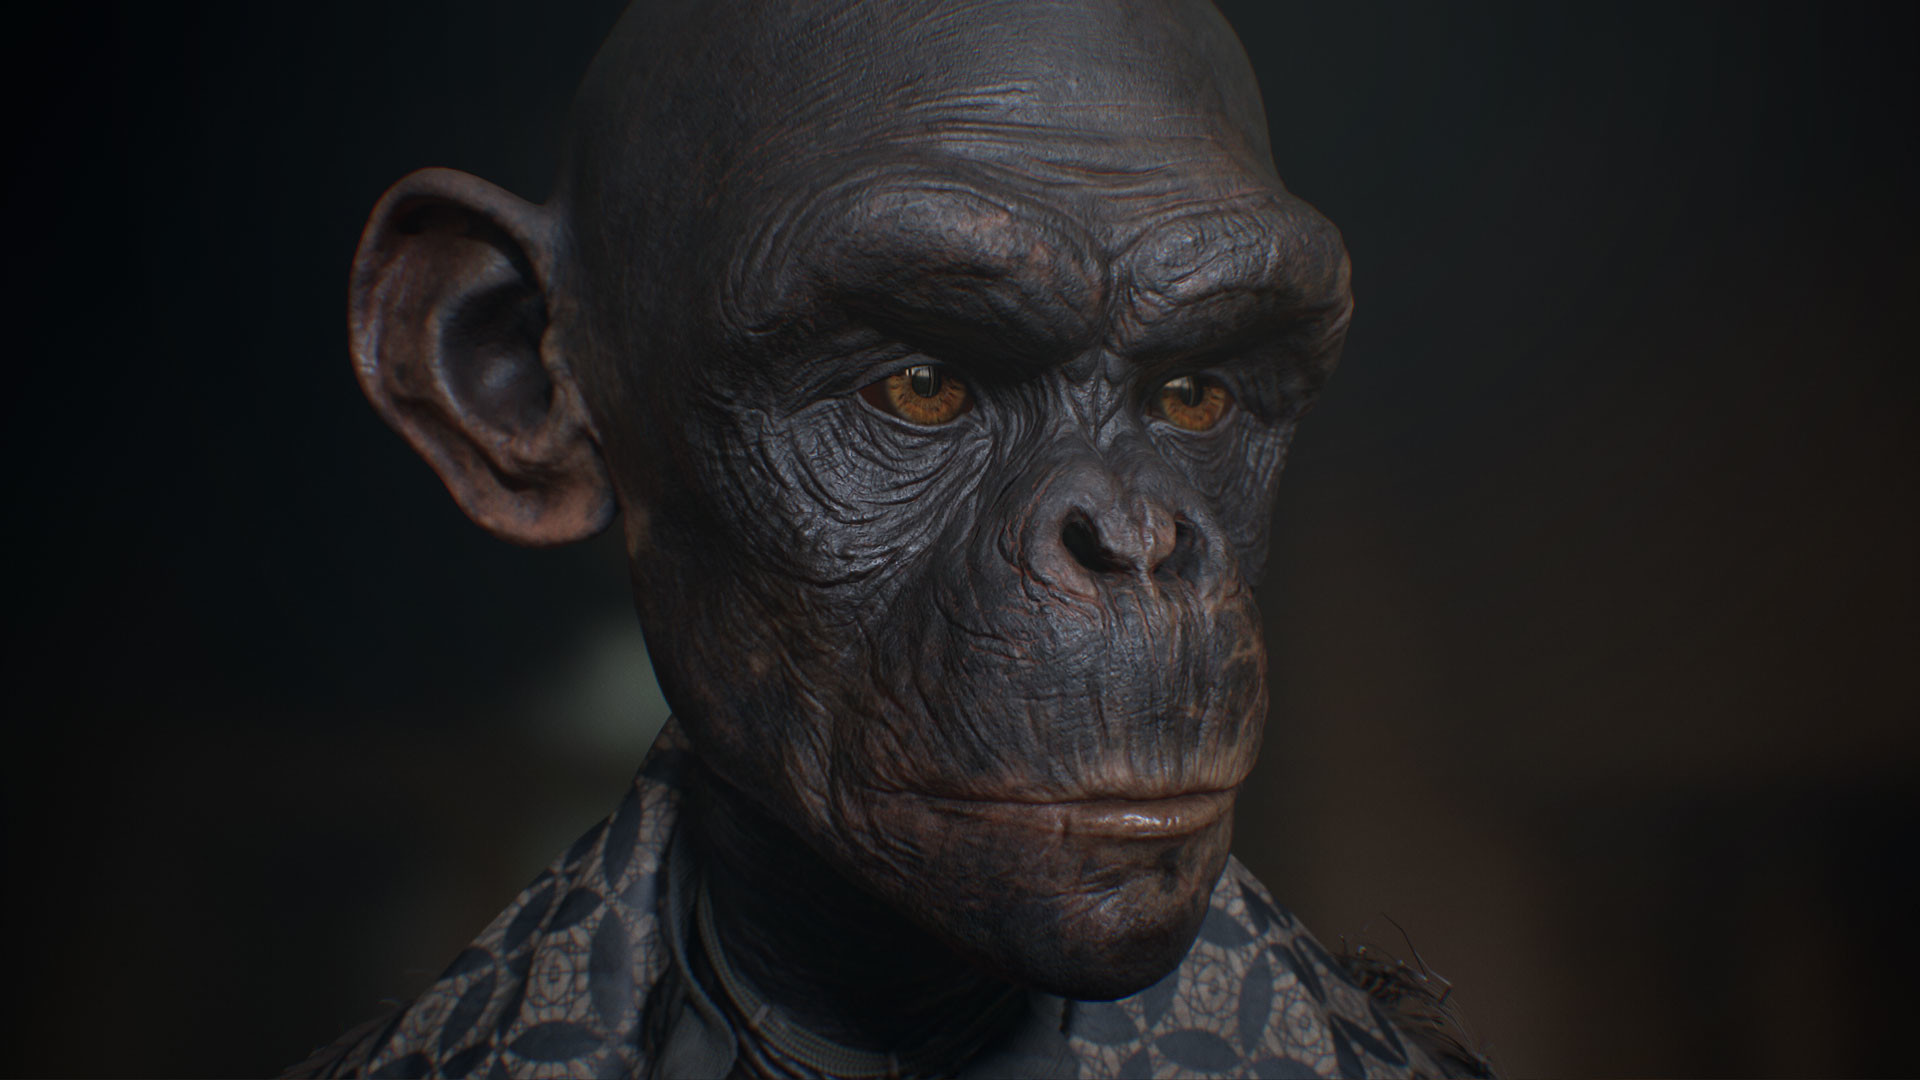 Pablo munoz gomez humanzee alternative render02